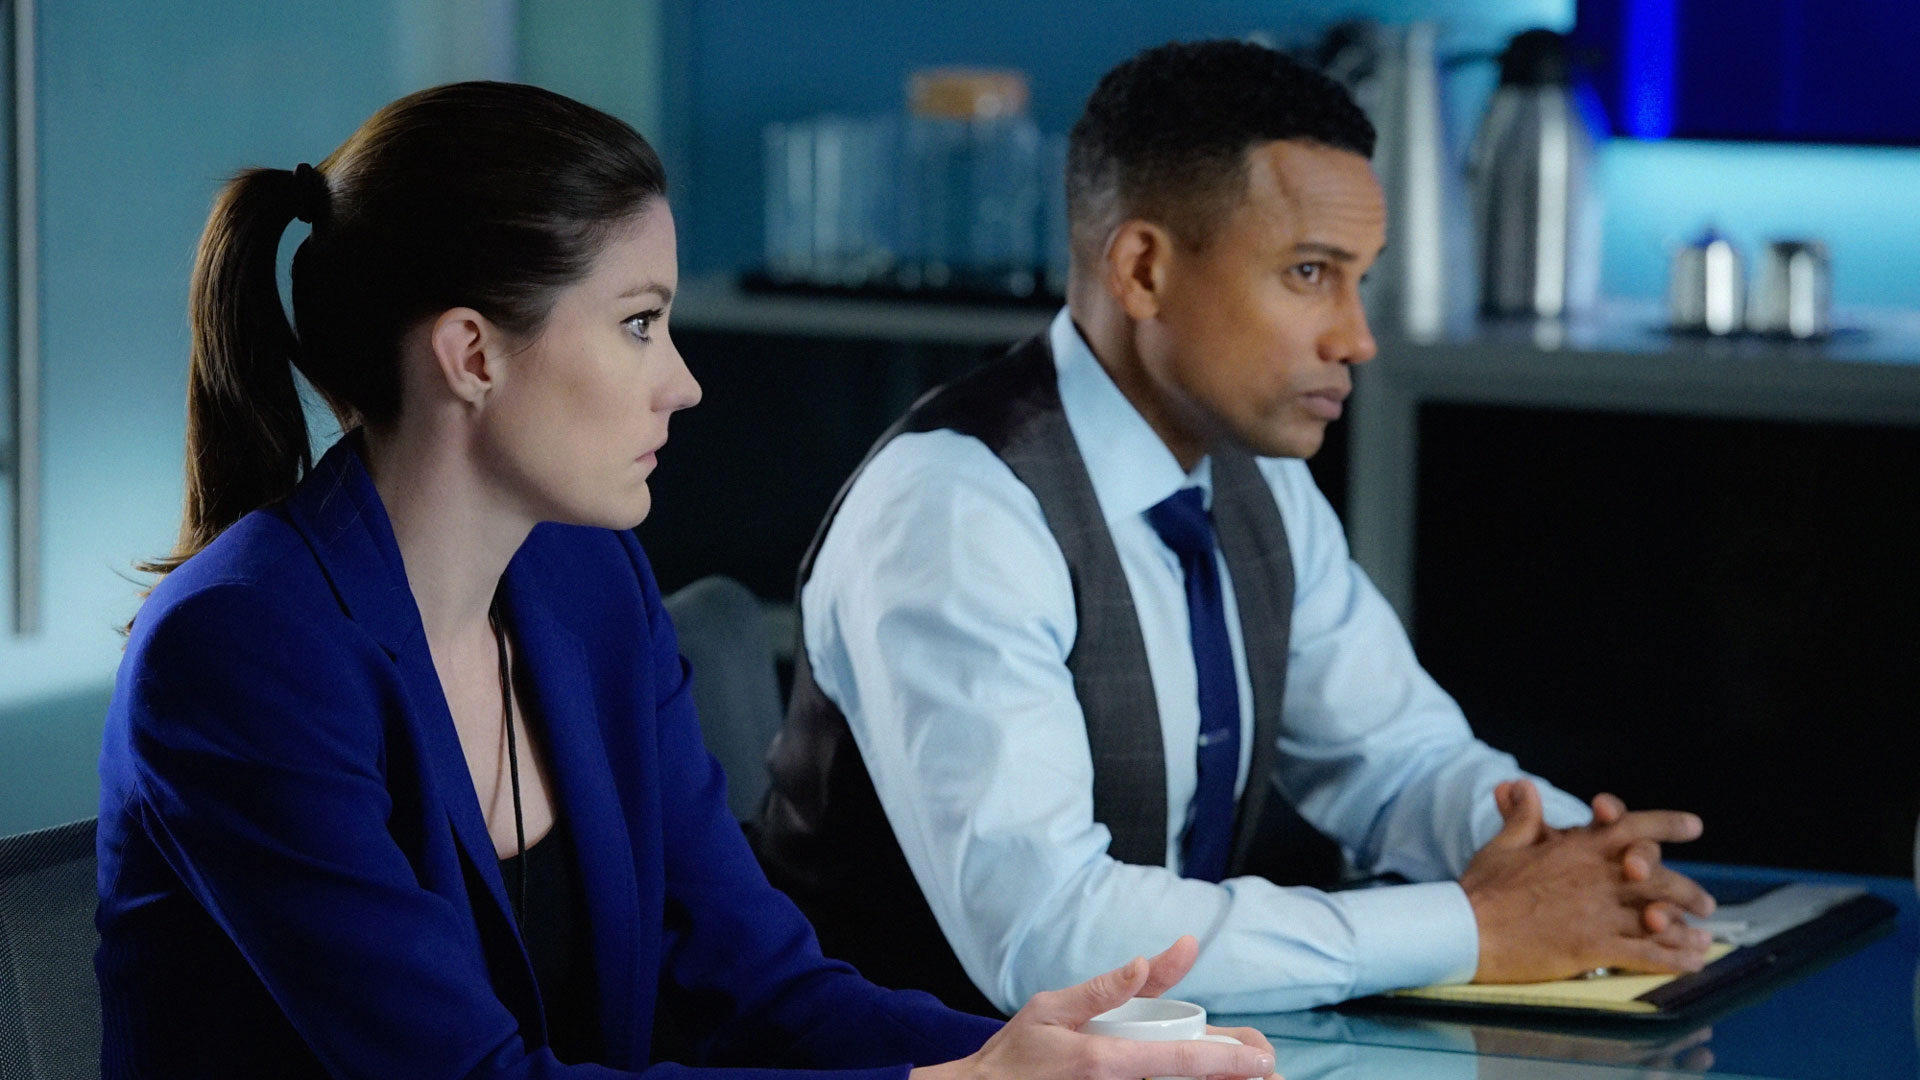 Jennifer Carpenter as Agent Rebecca Harris and Hill Harper as Agent Spelman Boyle